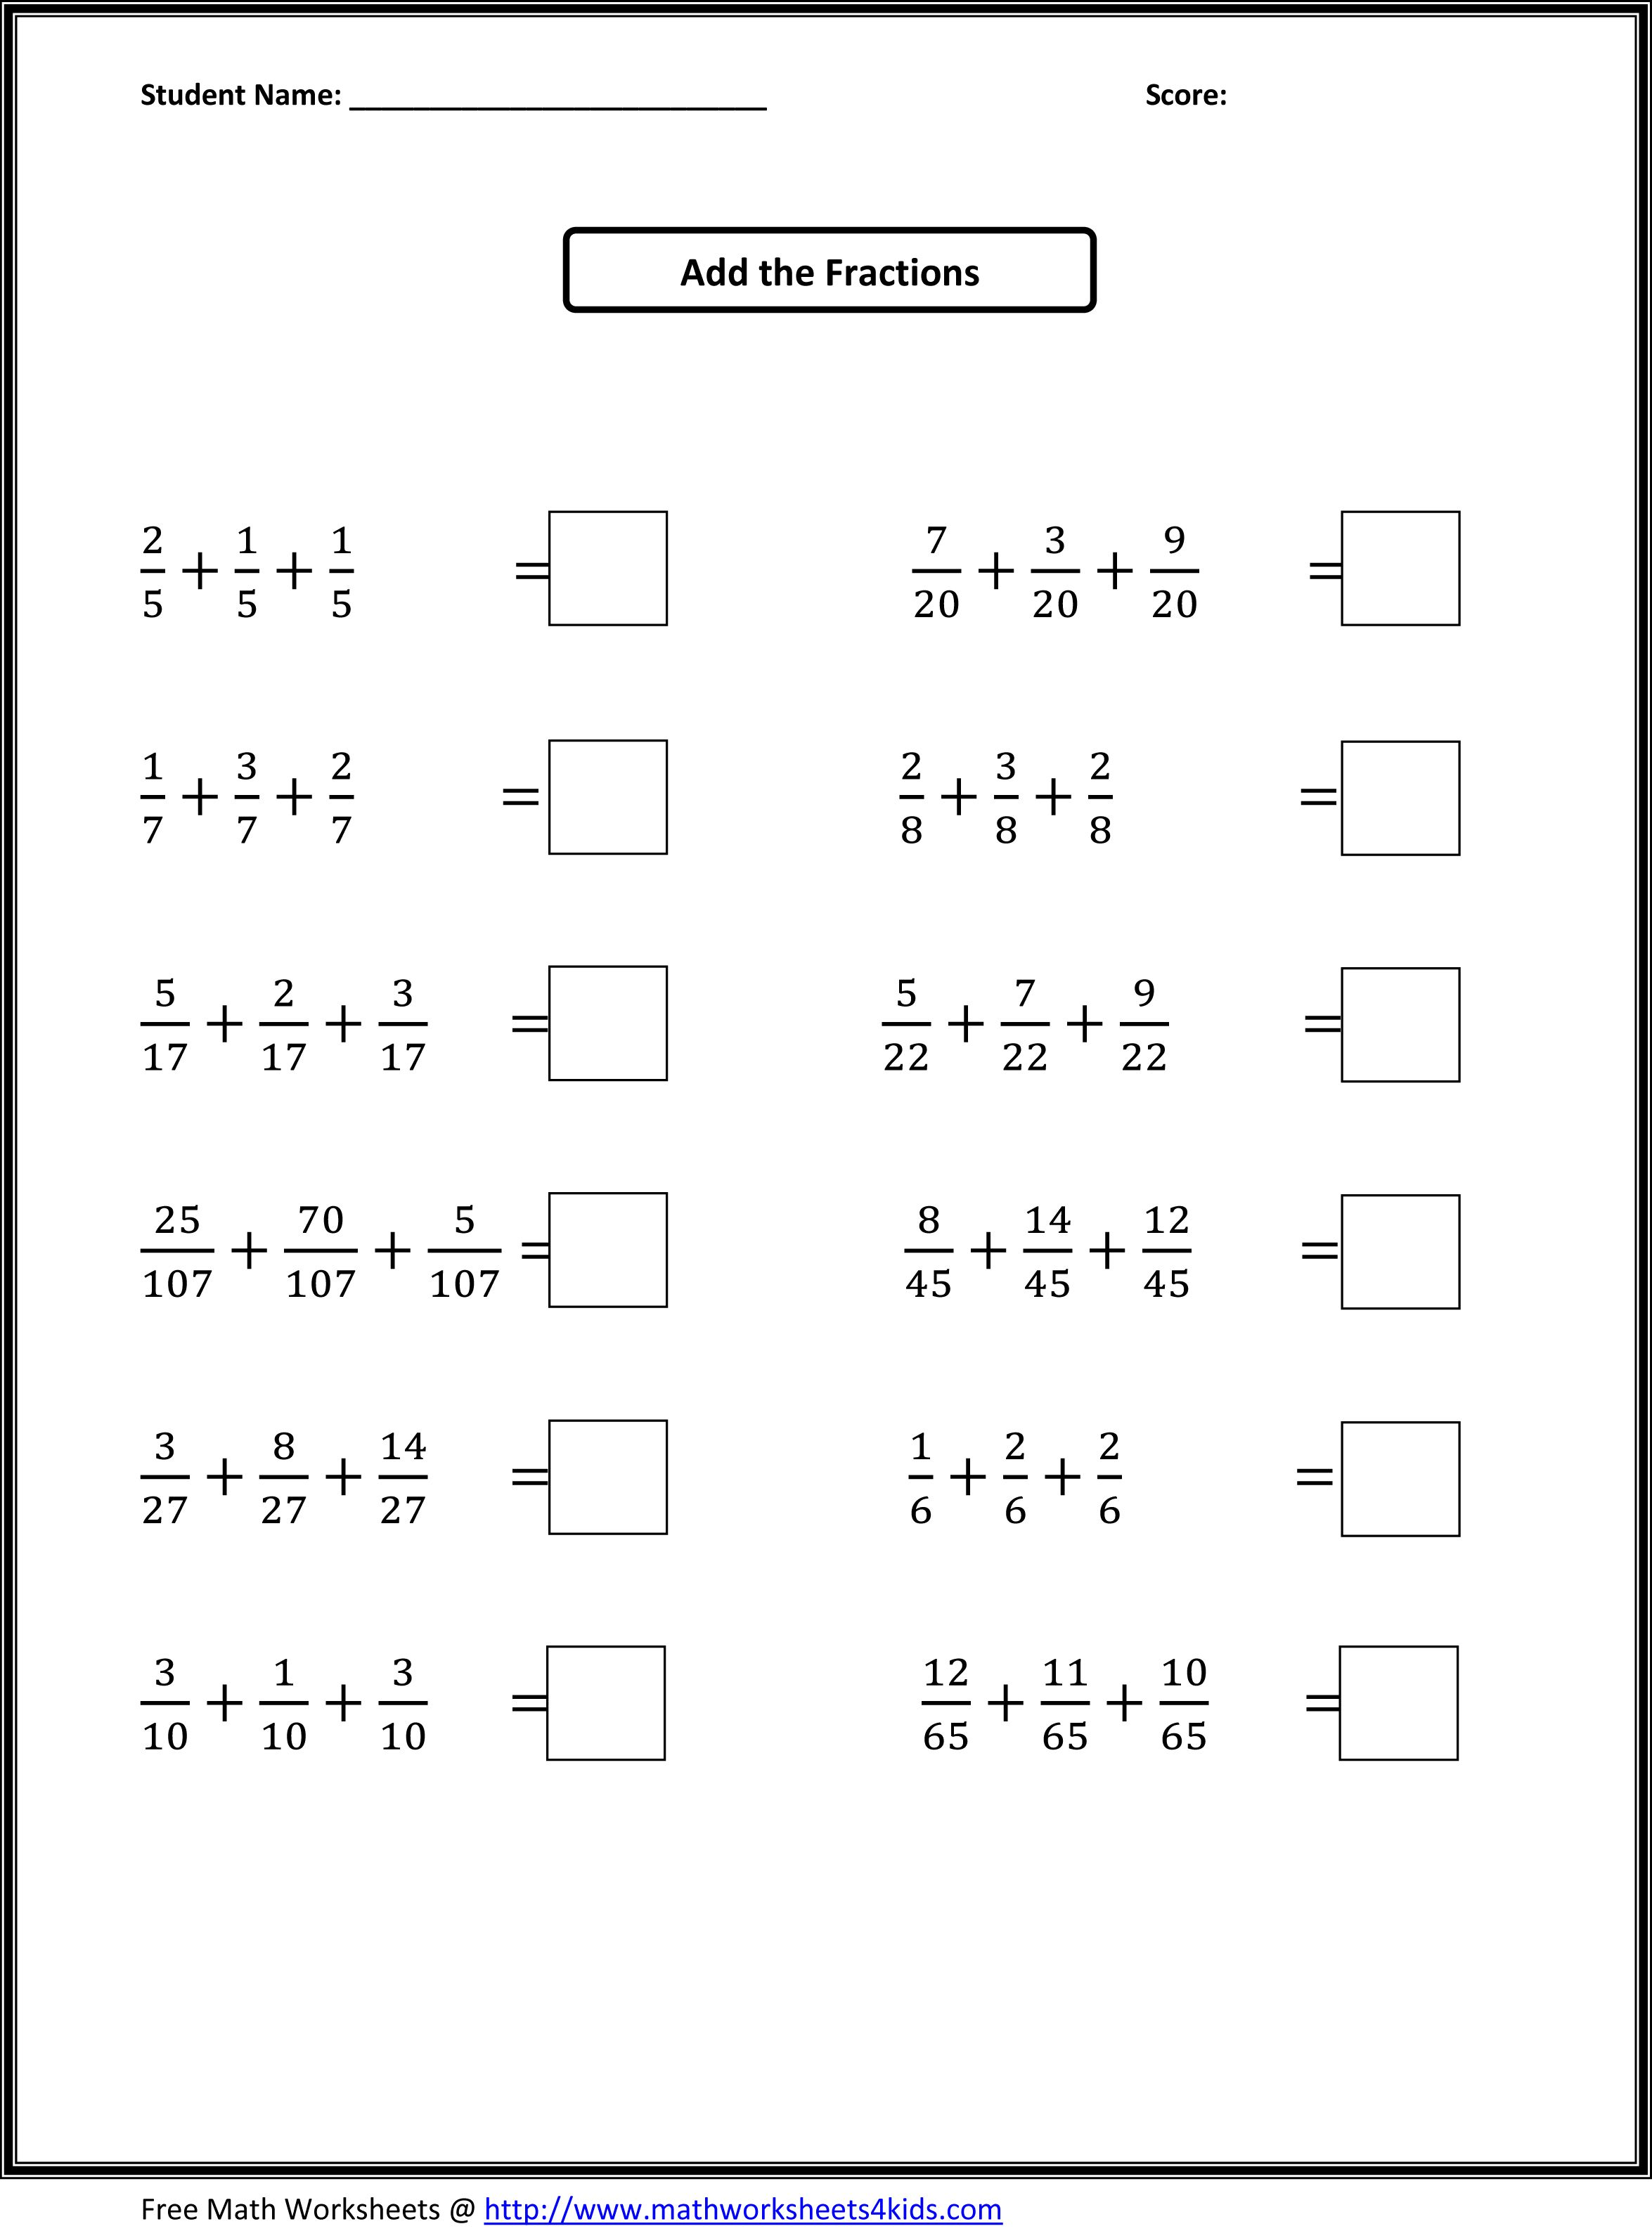 Printable Worksheets By Grade Level And By Skill